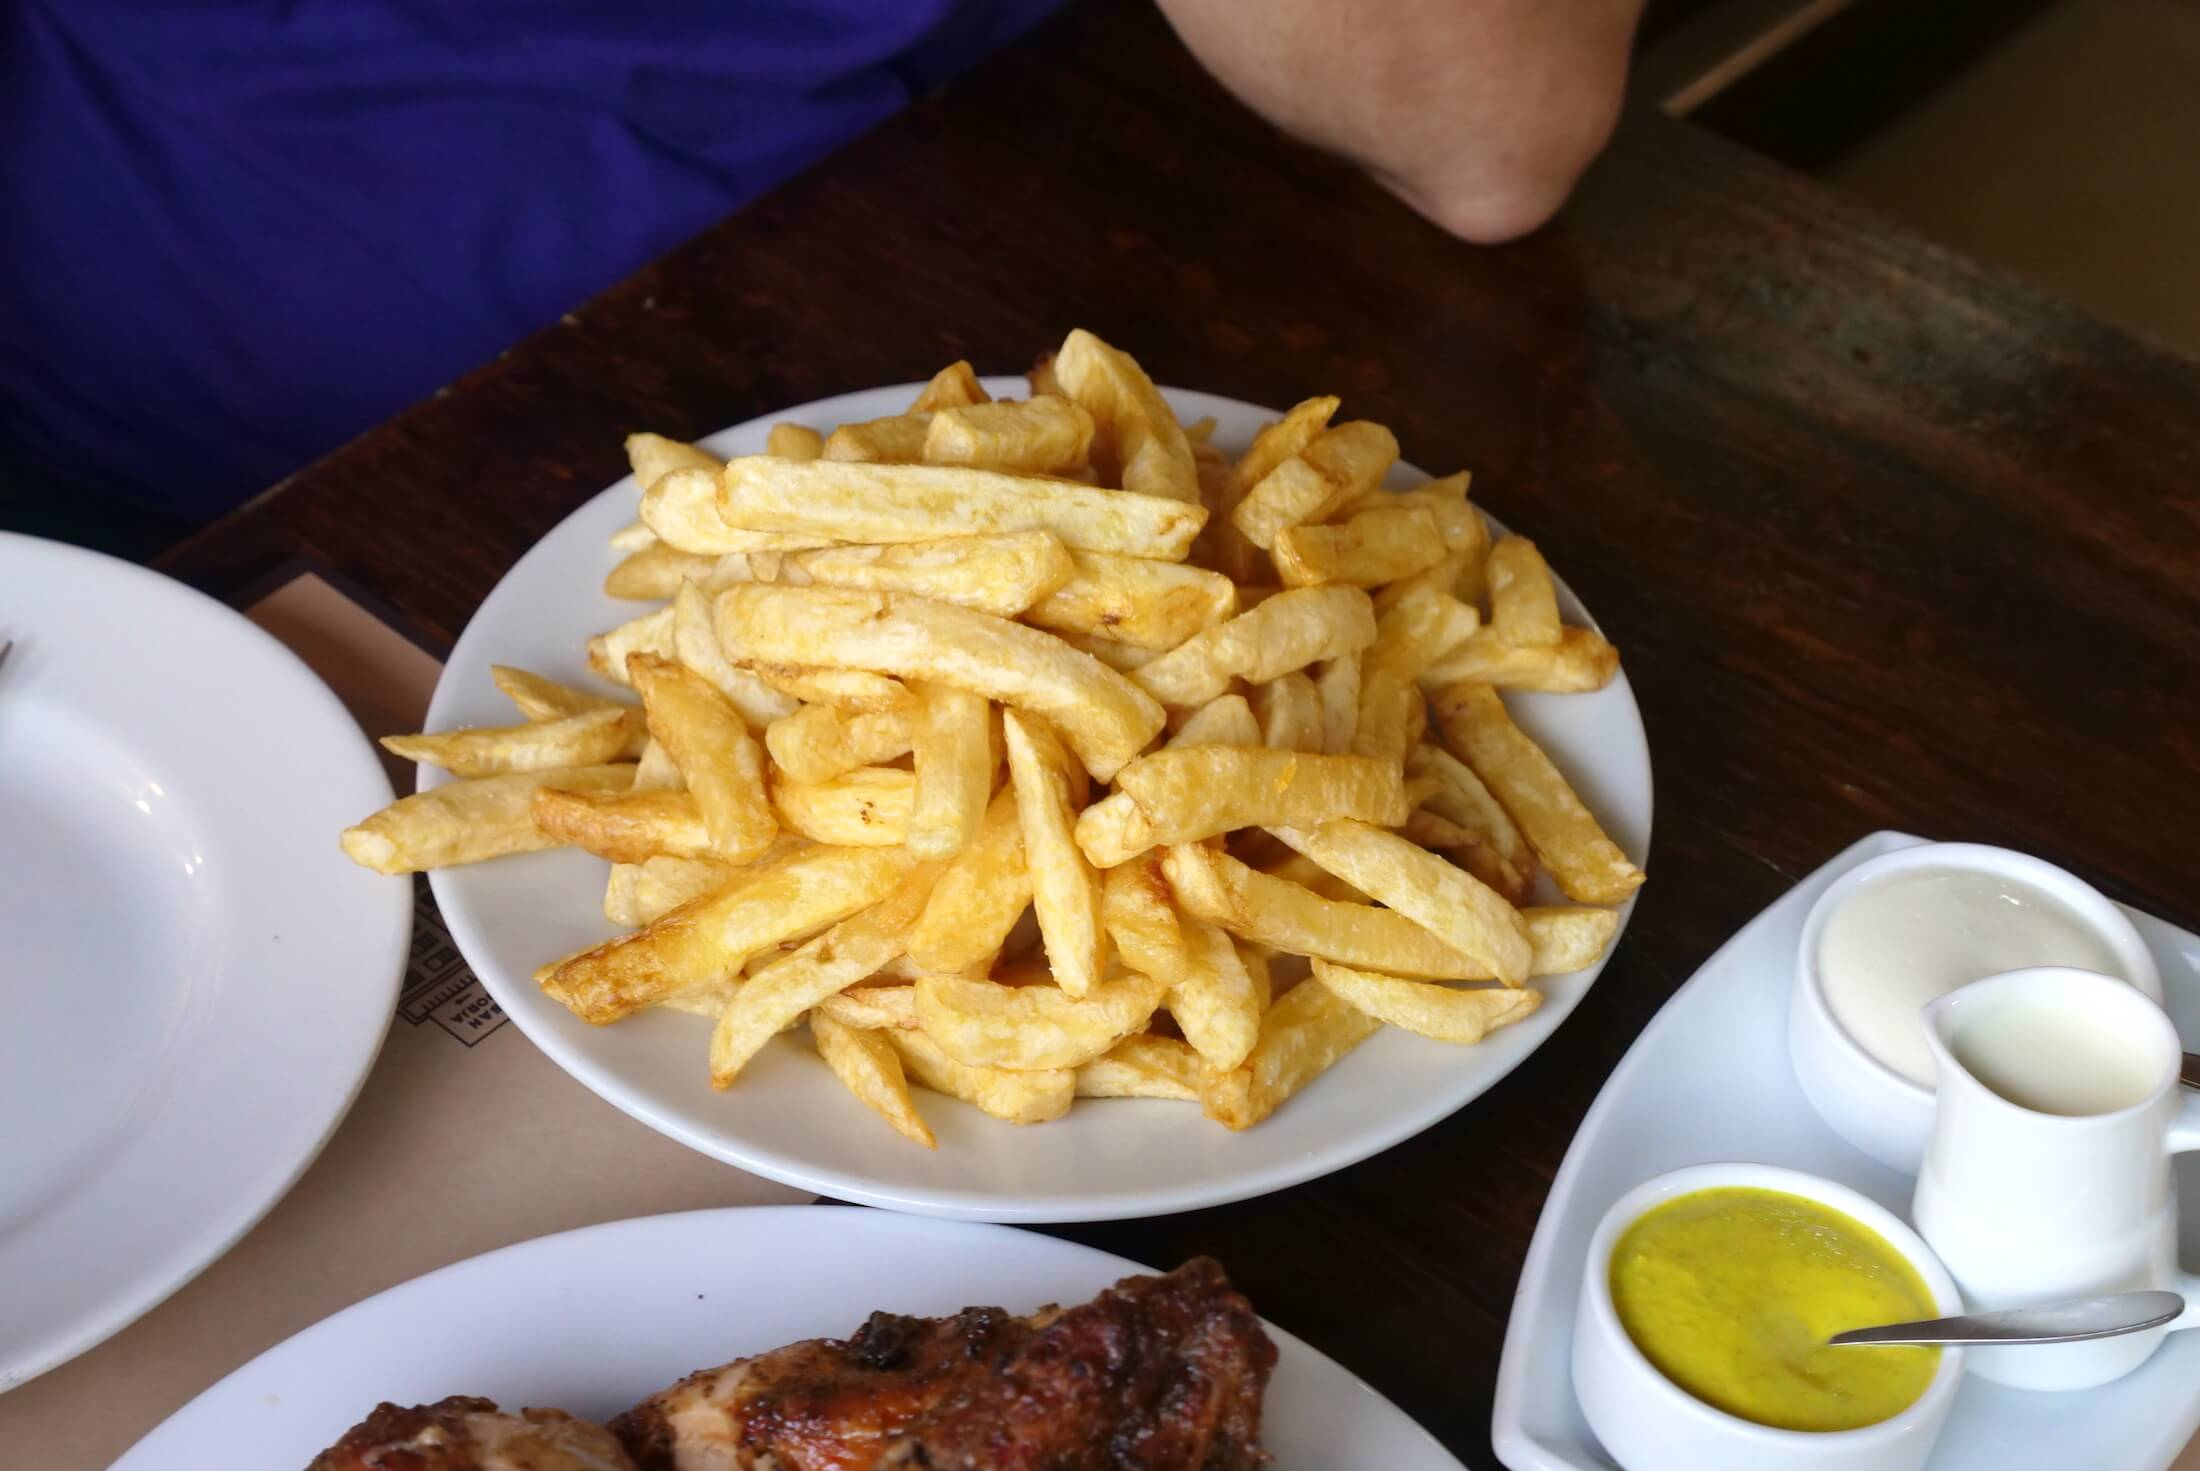 Peru's potatoes make absolutely excellent fries